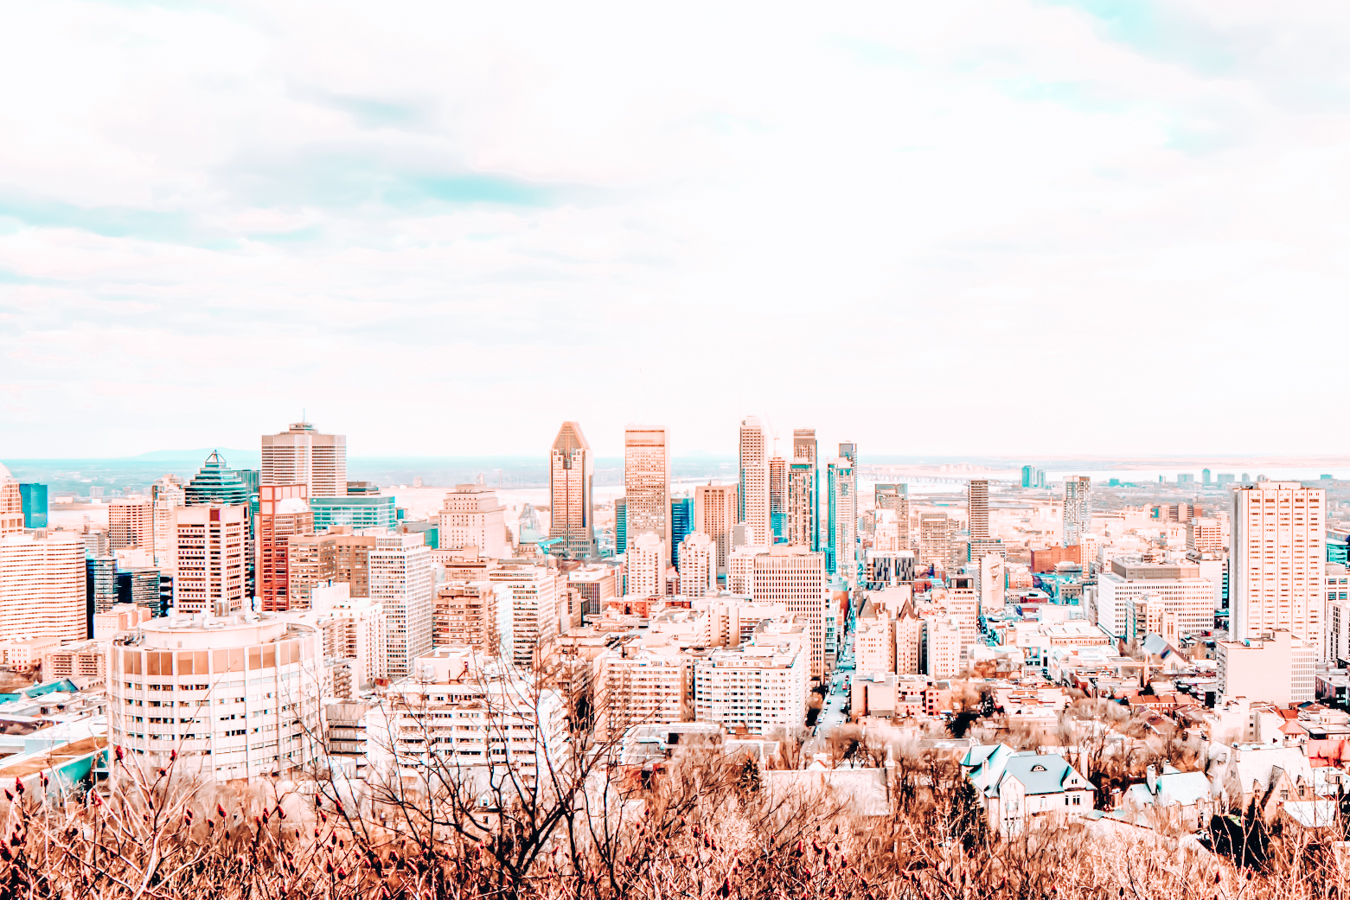 A view of buildings in Montreal